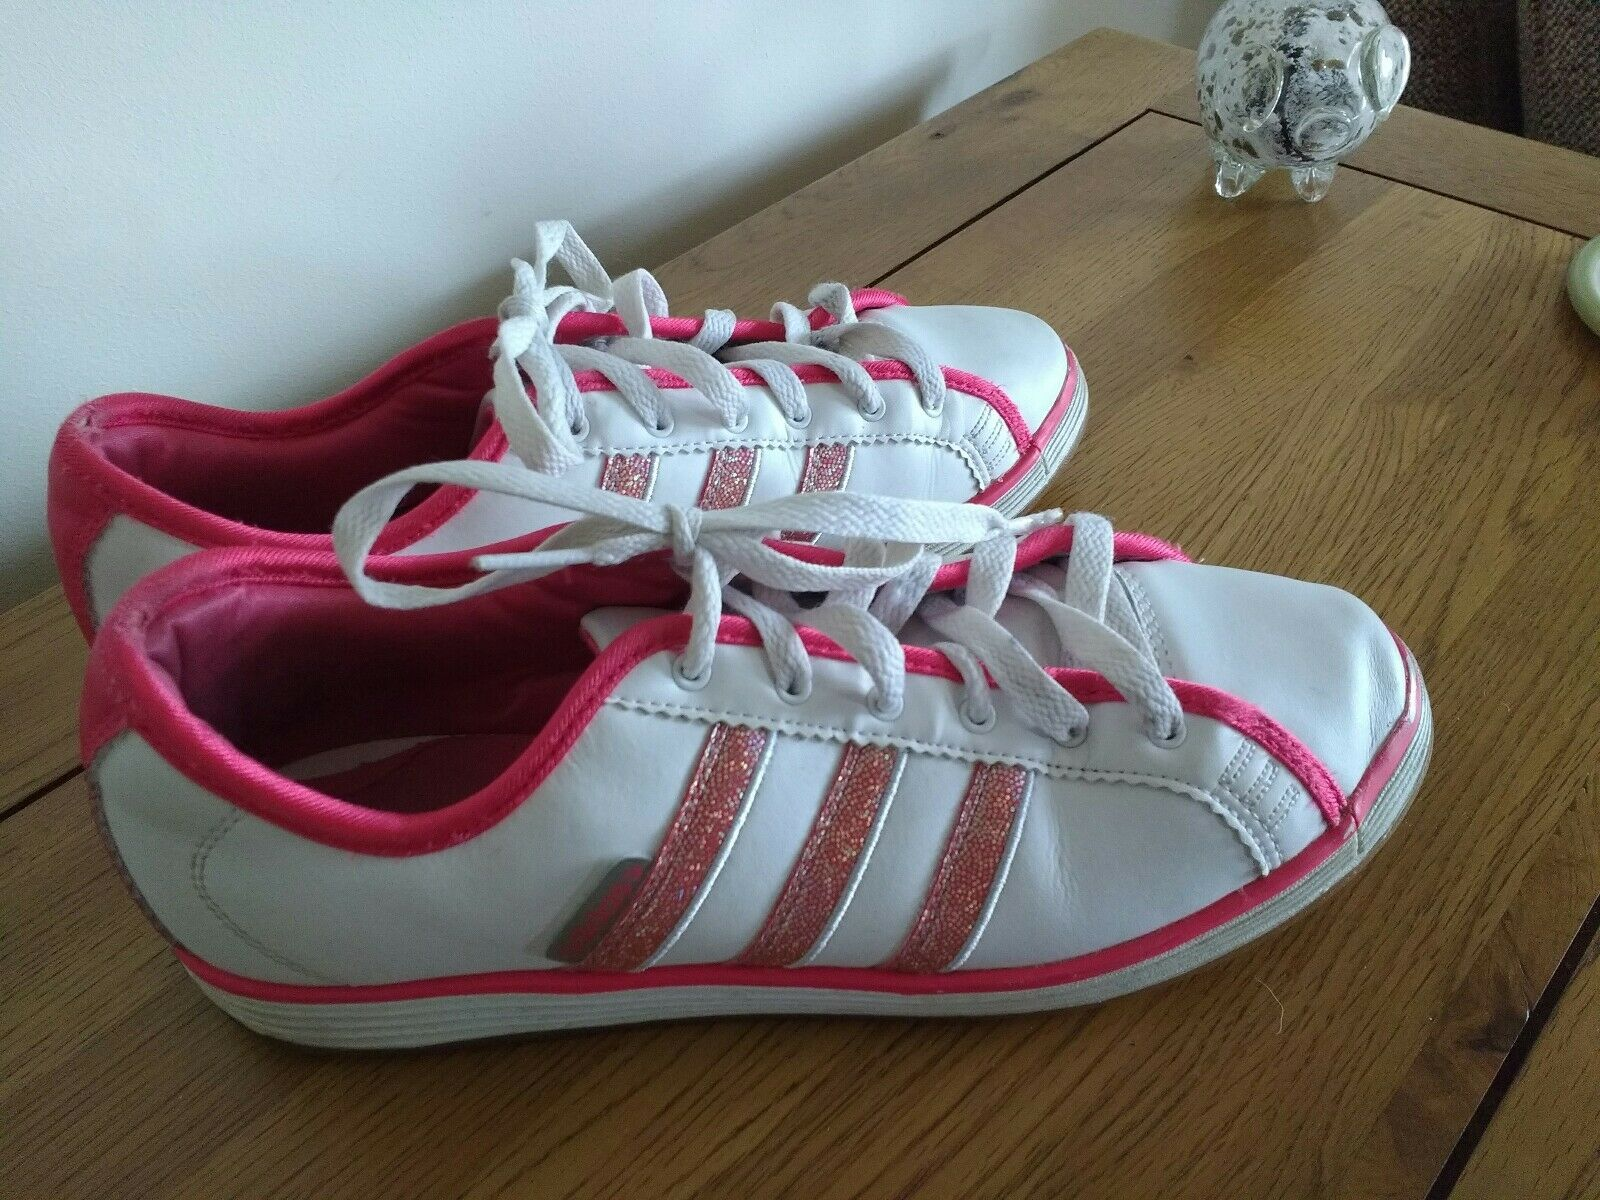 Adidas plimsolls  . trainers uk 6 EU 39 white leather pink glitter stripes